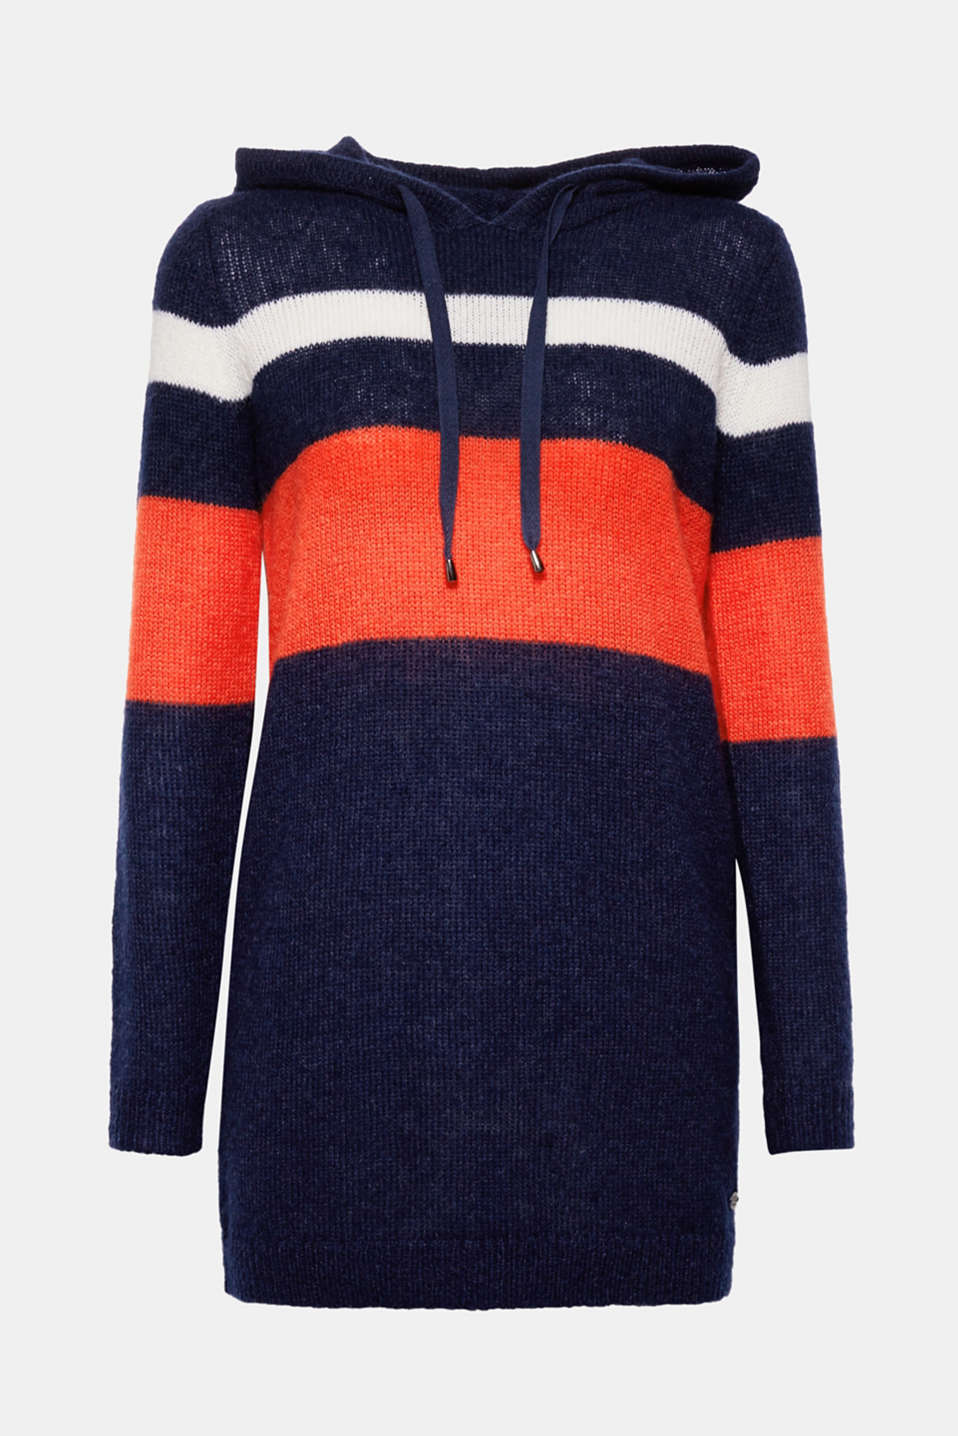 Wonderfully lightweight and fashionably long: This hooded jumper with colour blocking makes a sporty statement!